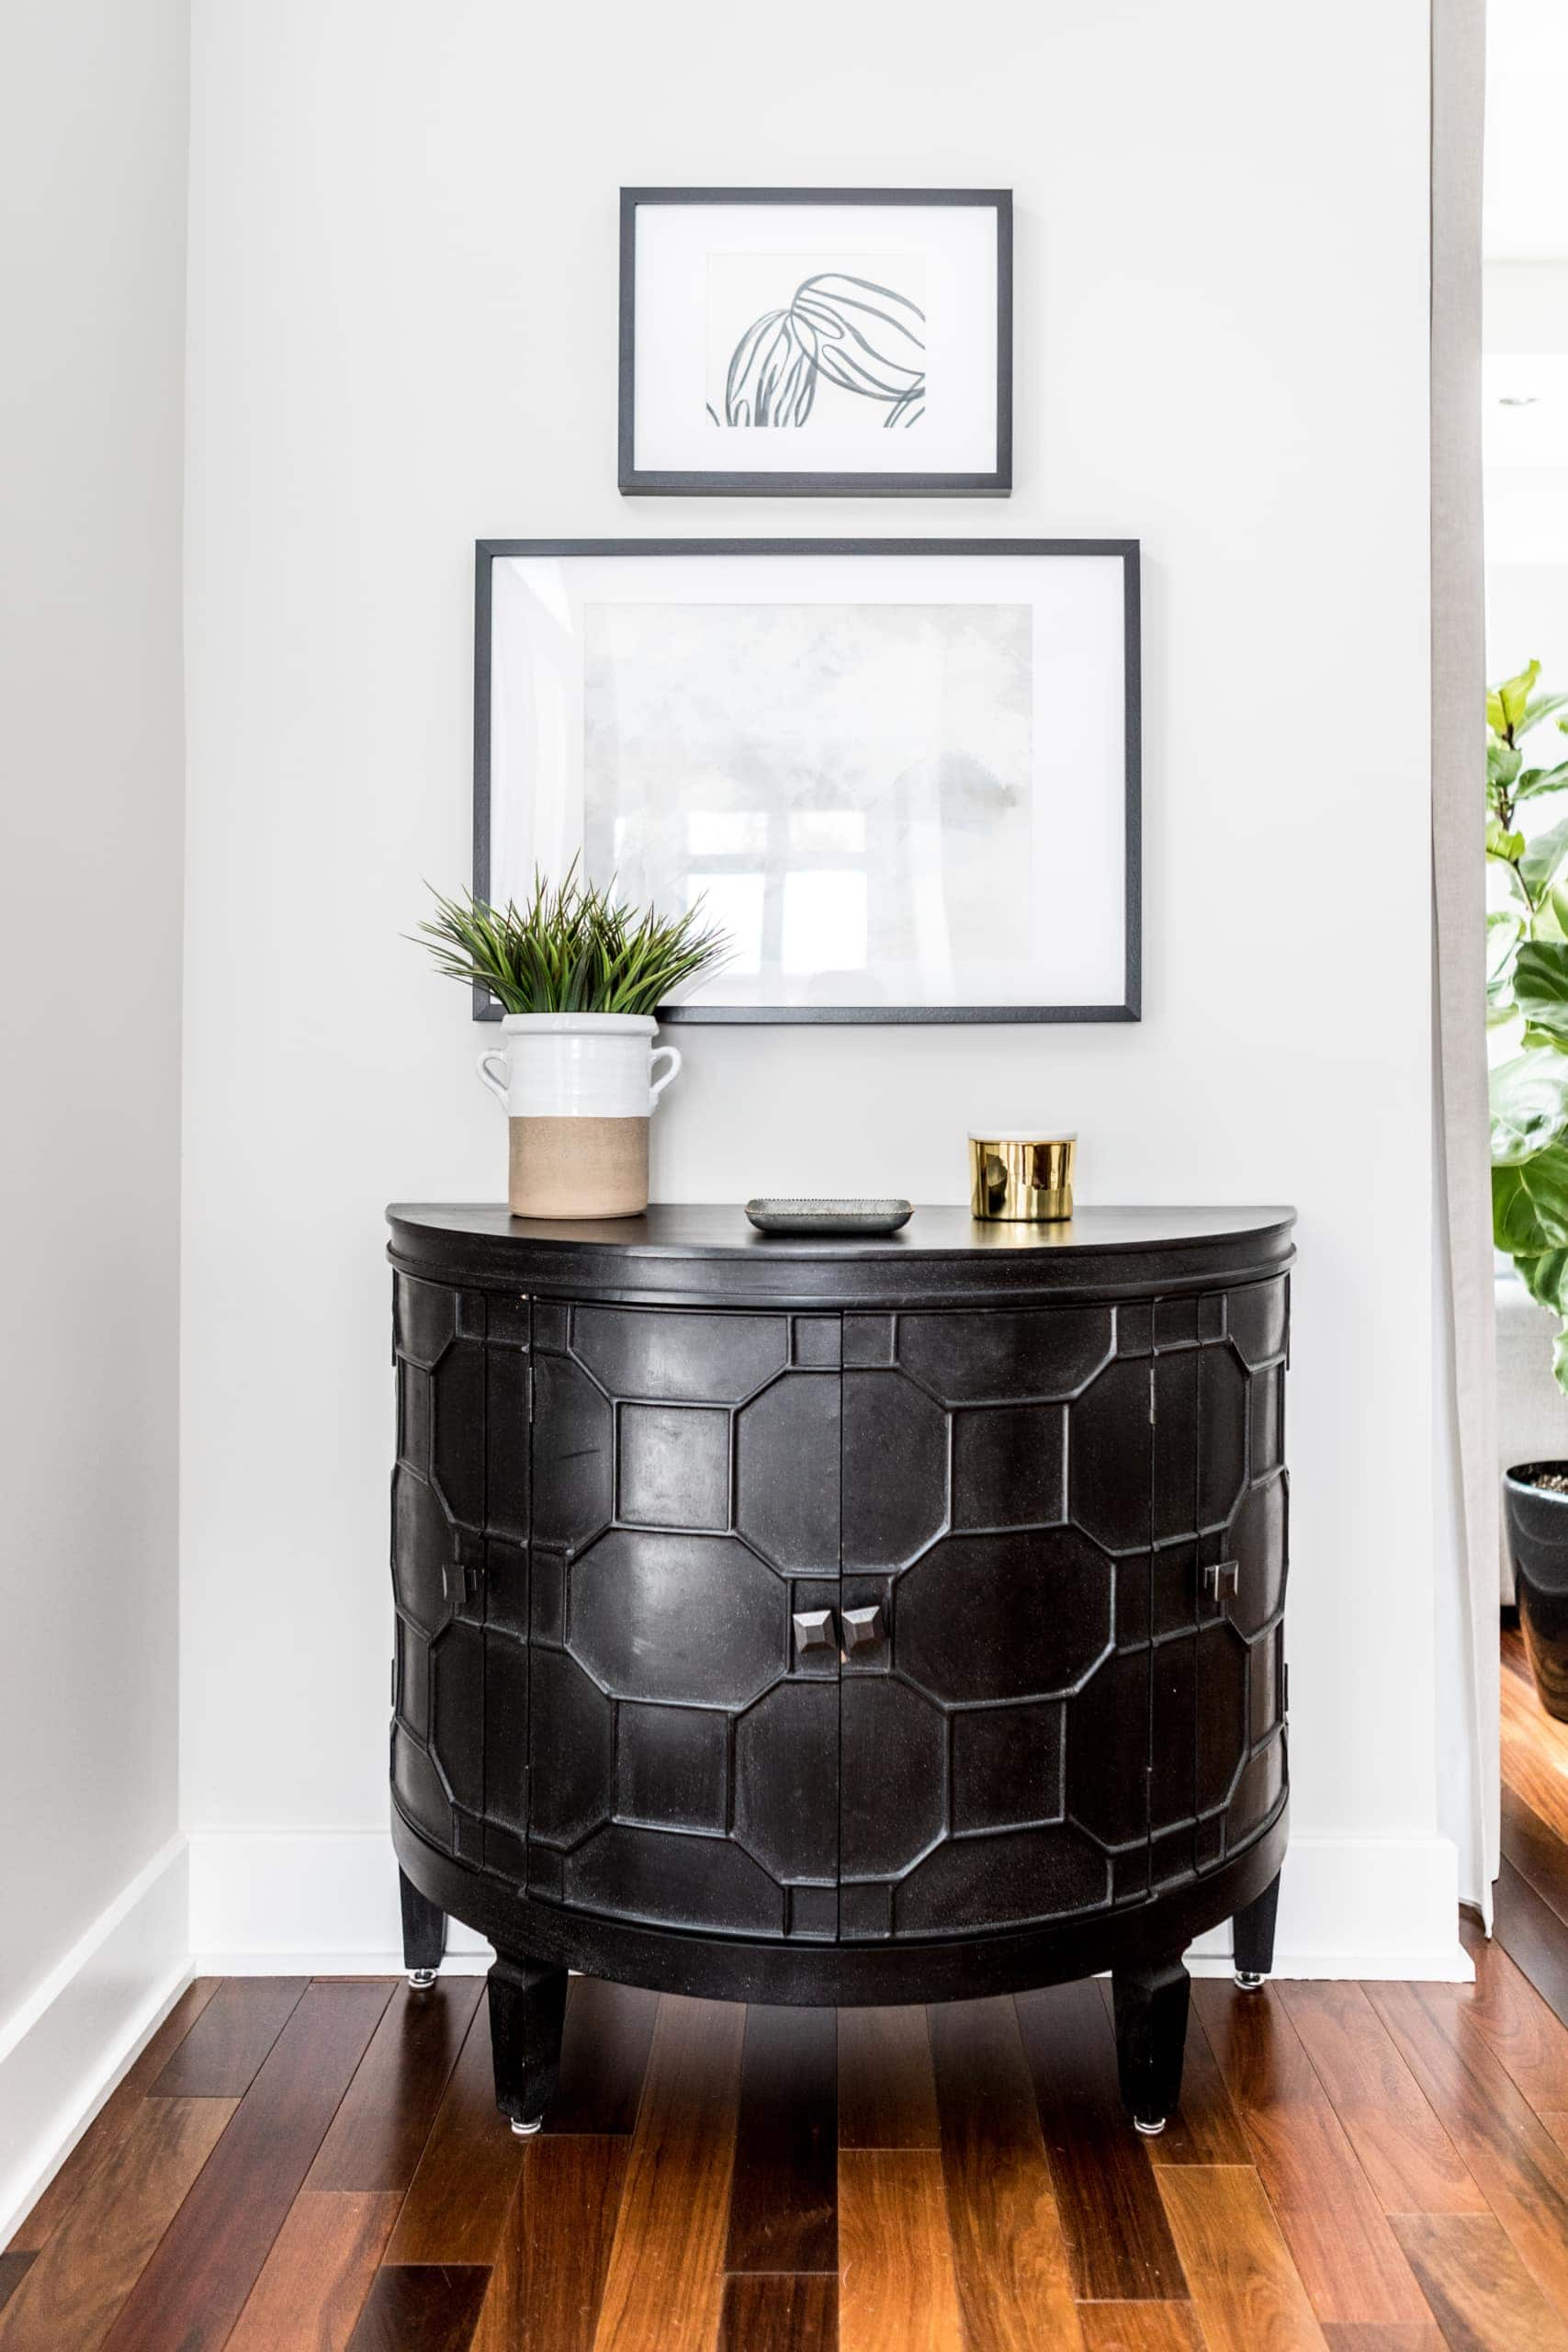 Black table against the wall near a staircase